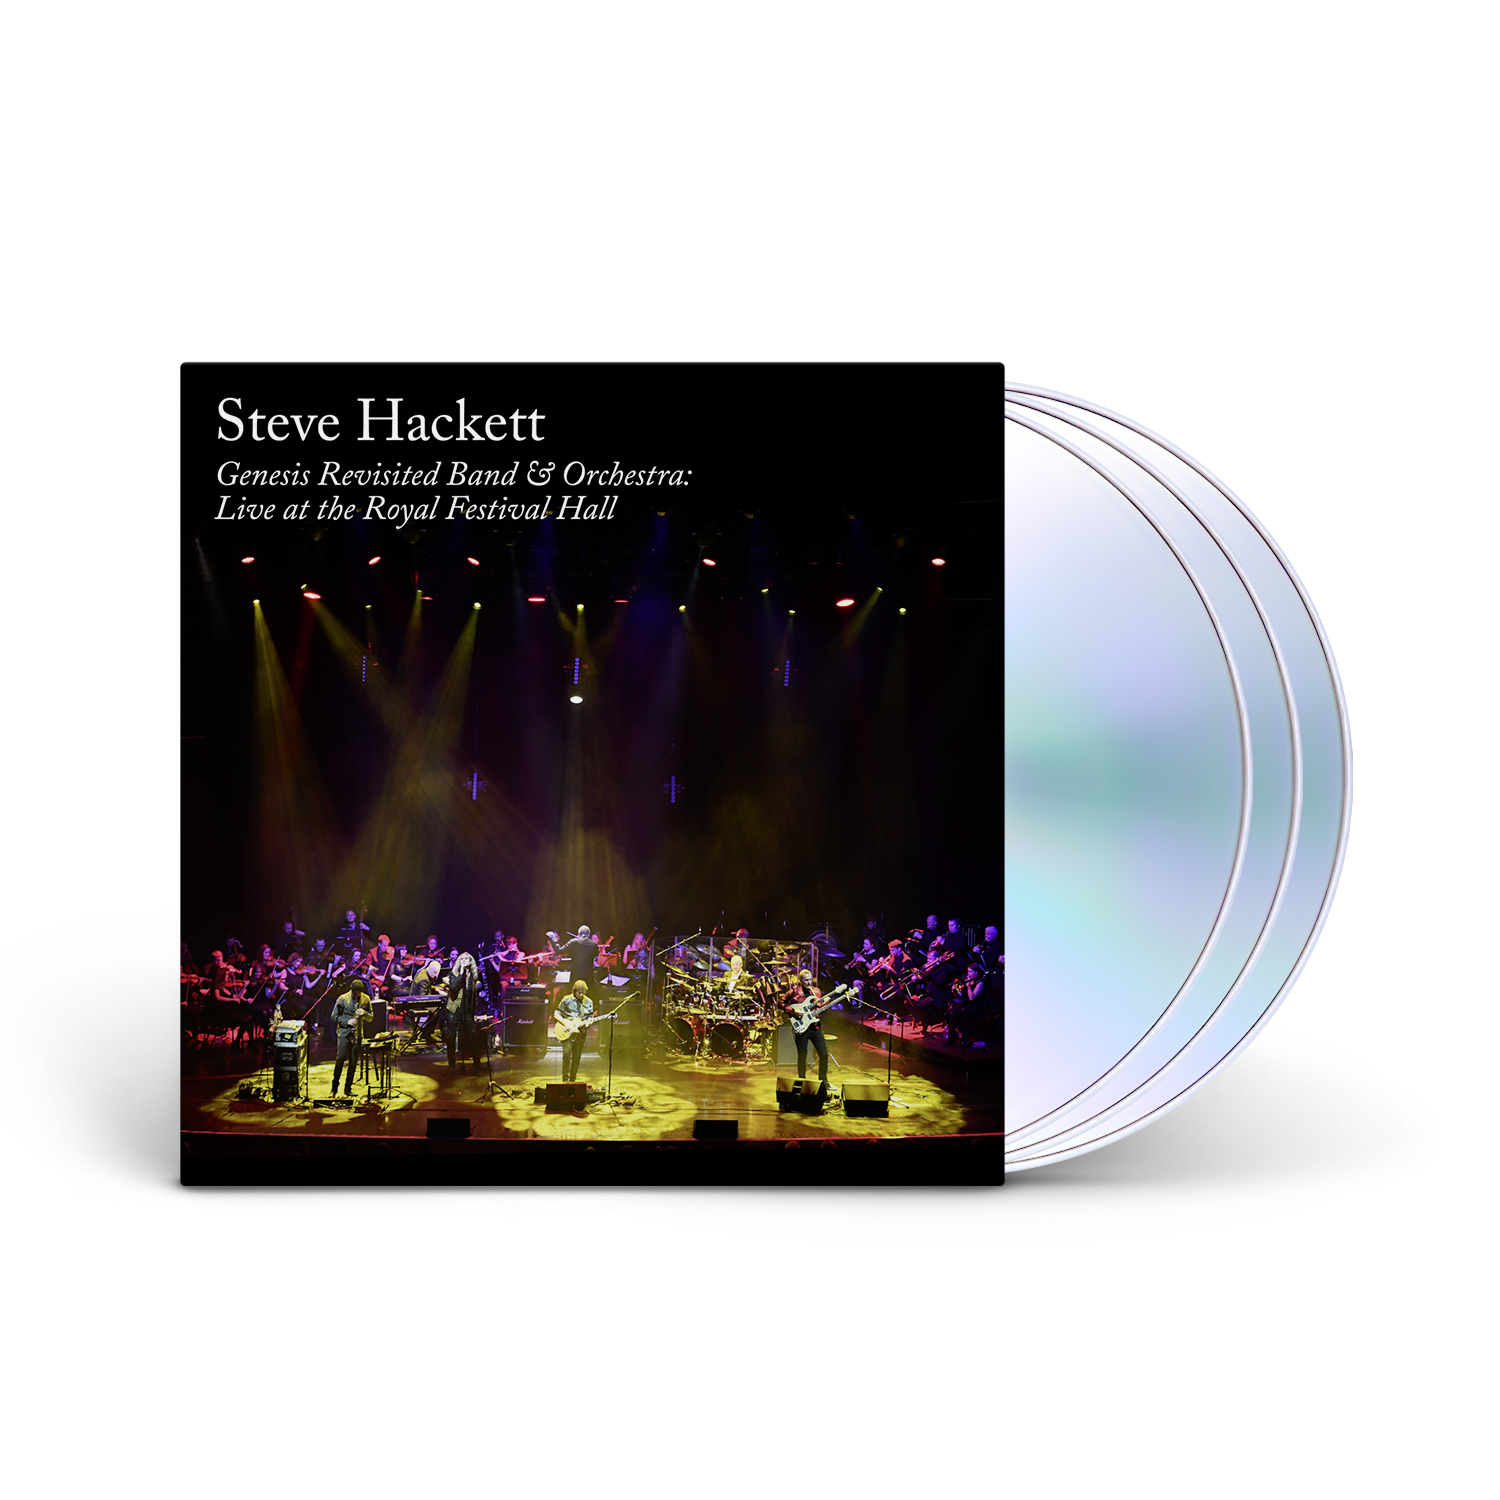 Steve Hackett - Genesis Revisited Band & Orchestra: Live 2CD+BLU-RAY+DVD